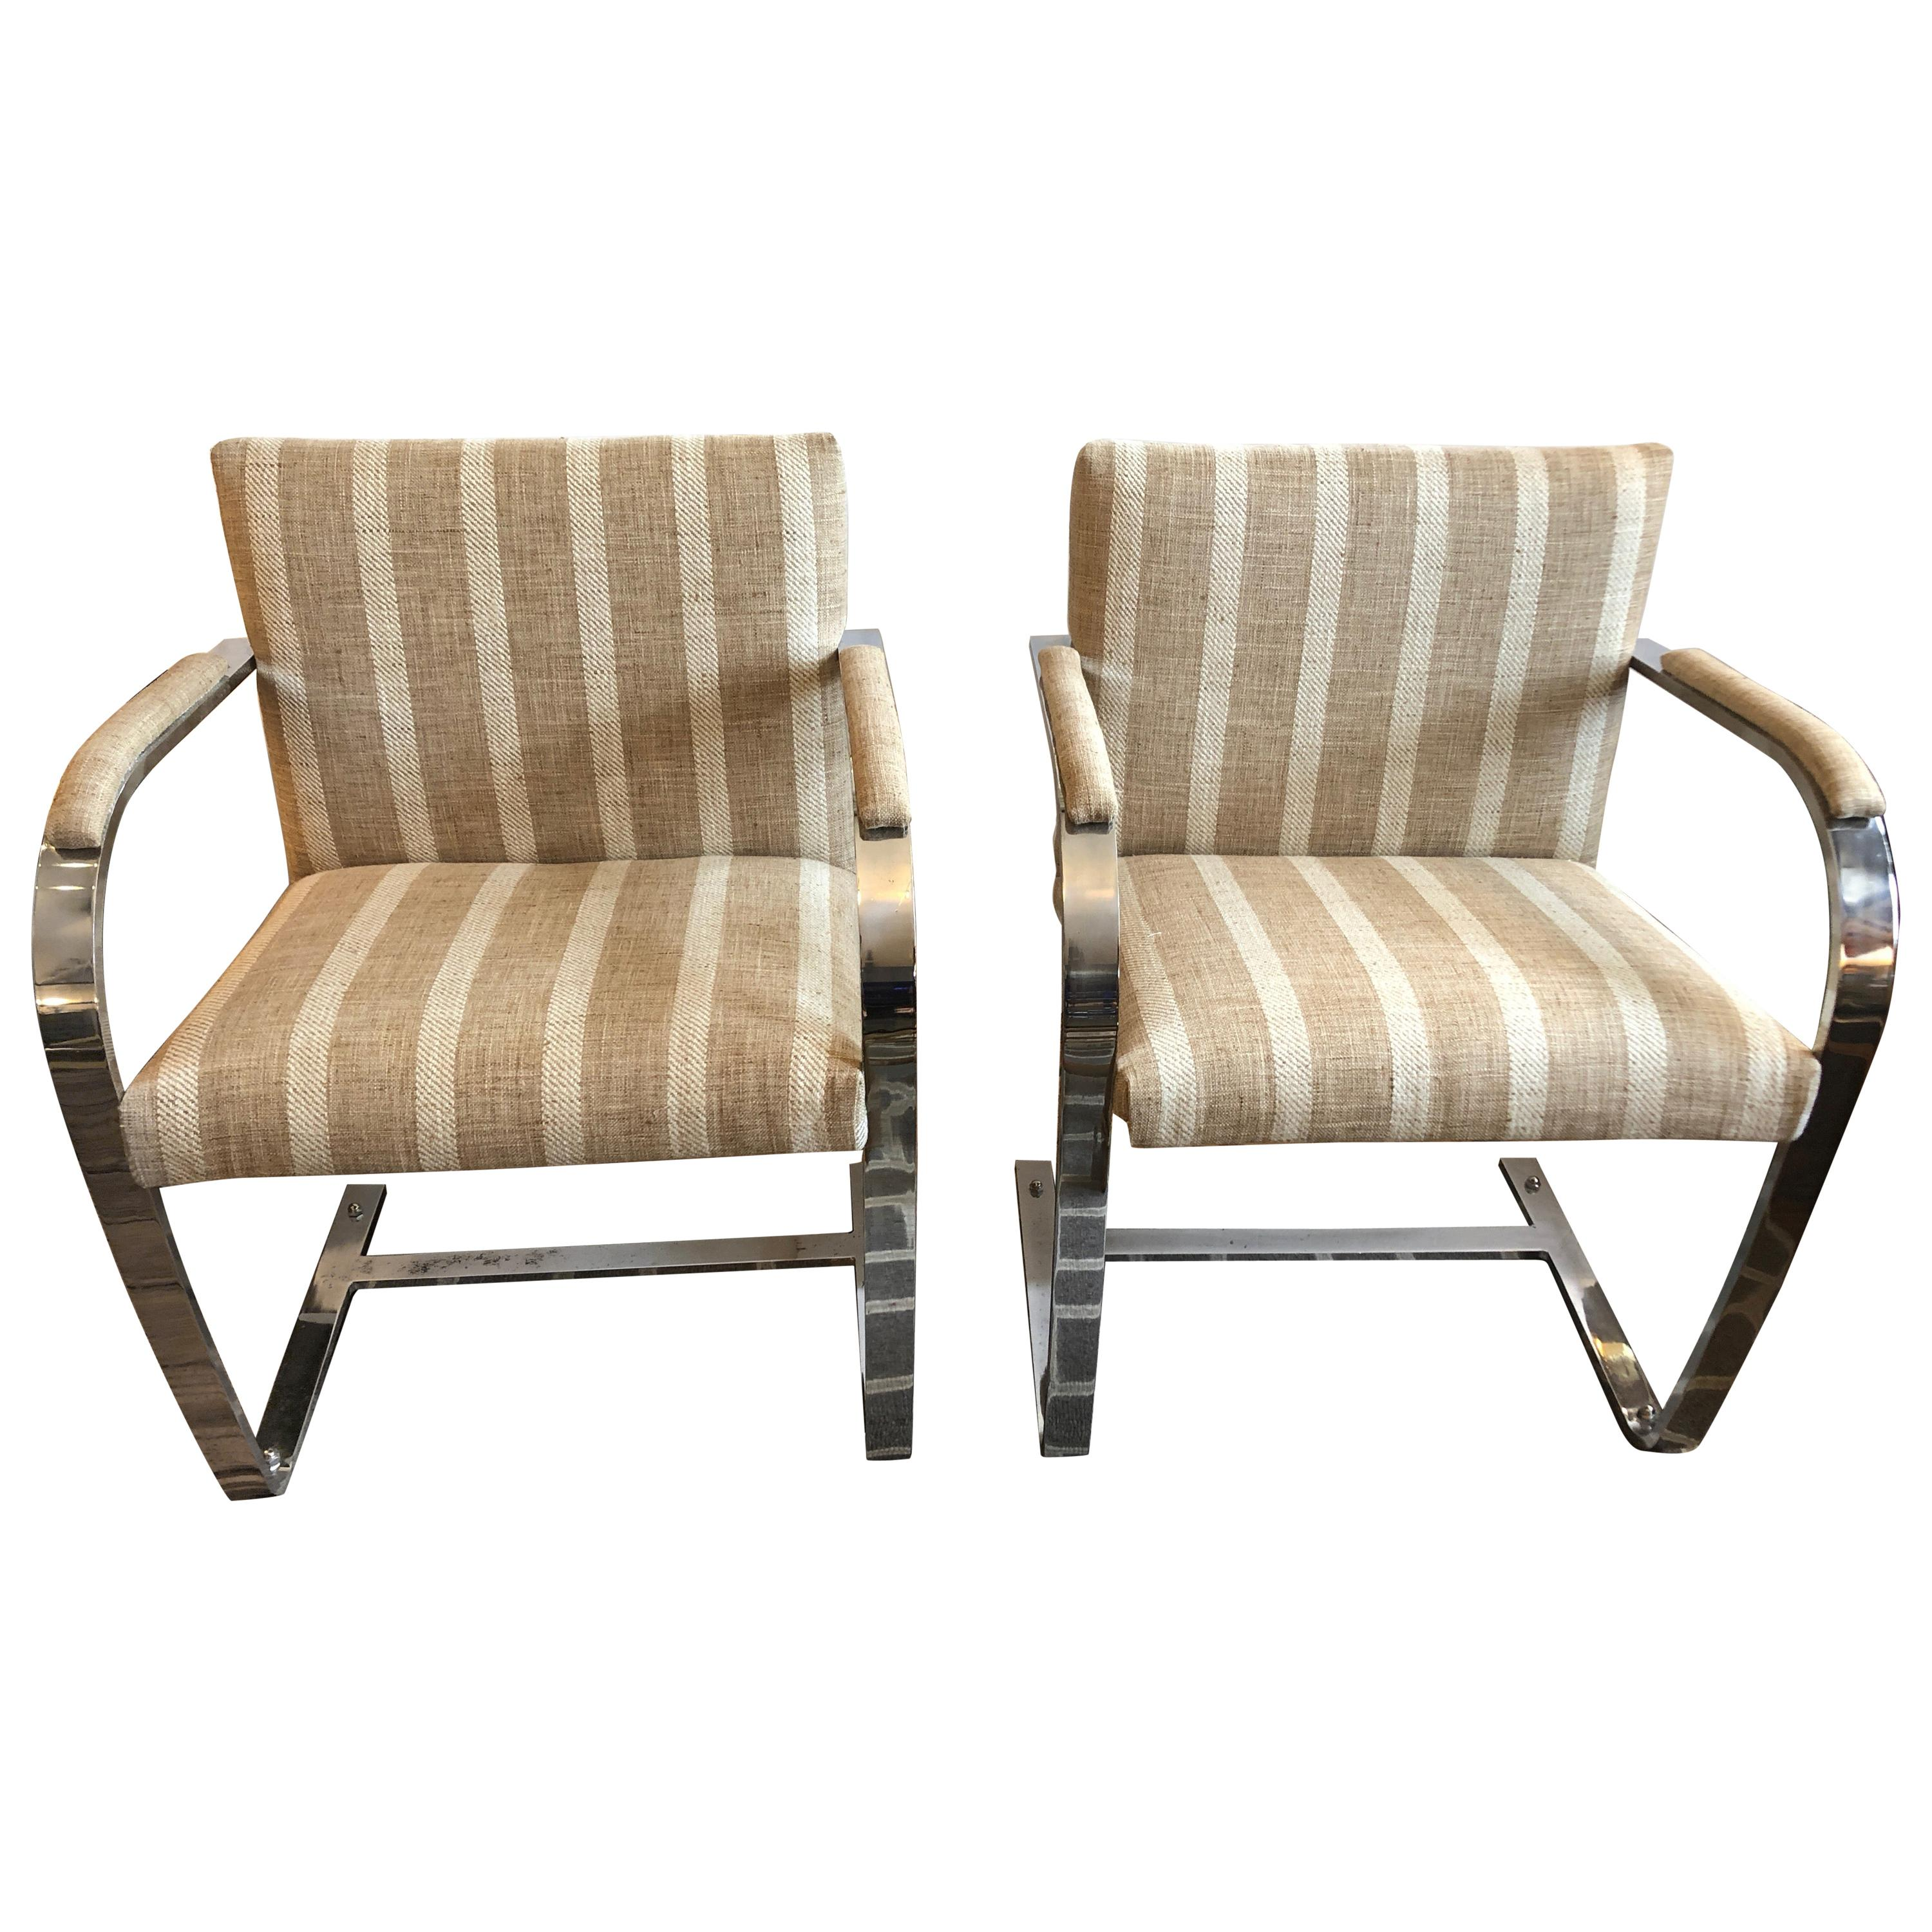 Stunning Pair of Chrome and Upholstered Mid-Century Modern Armchairs